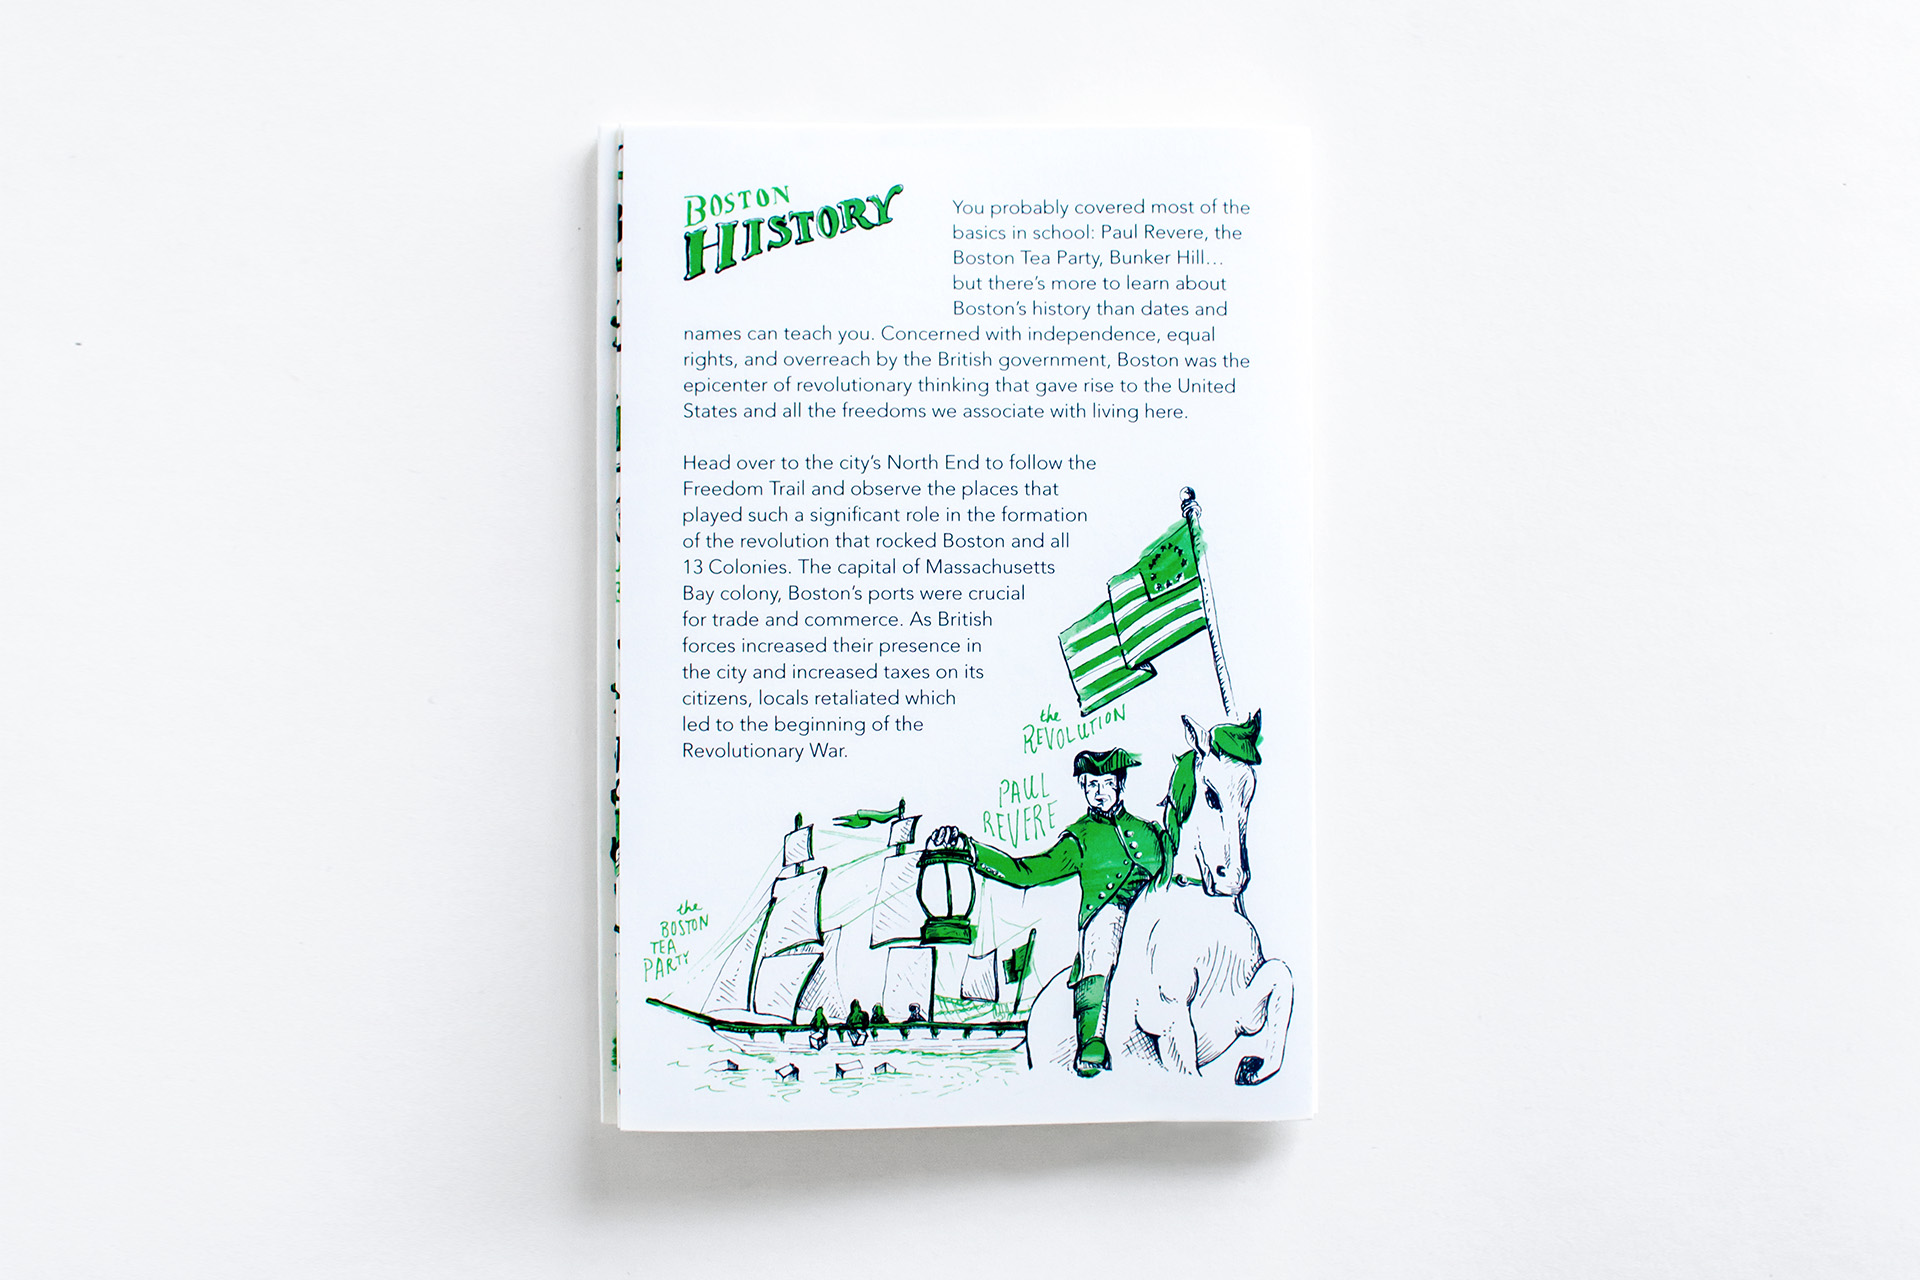 Boston History panel, created by Russell Shaw, features historical fun facts about the city and hand drawn pen and ink illustrations of Paul Revere, the Revolutionary War Flag, and the Boston Tea Party.